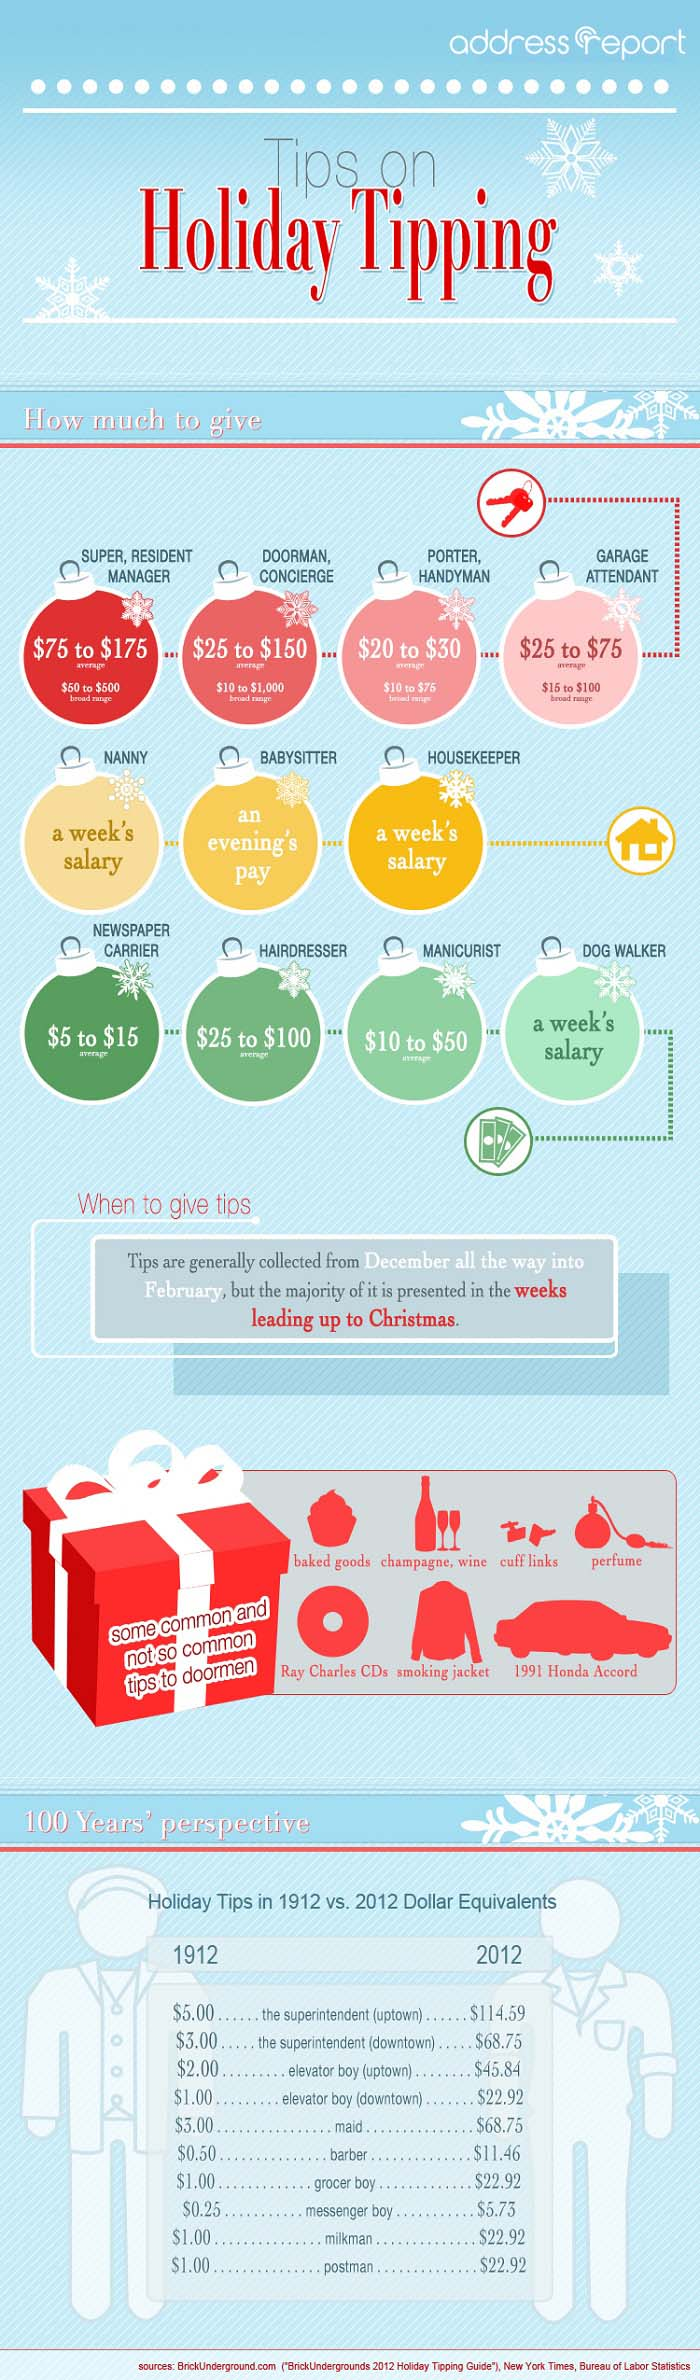 AddressReport Holiday Tipping Guide Infographic